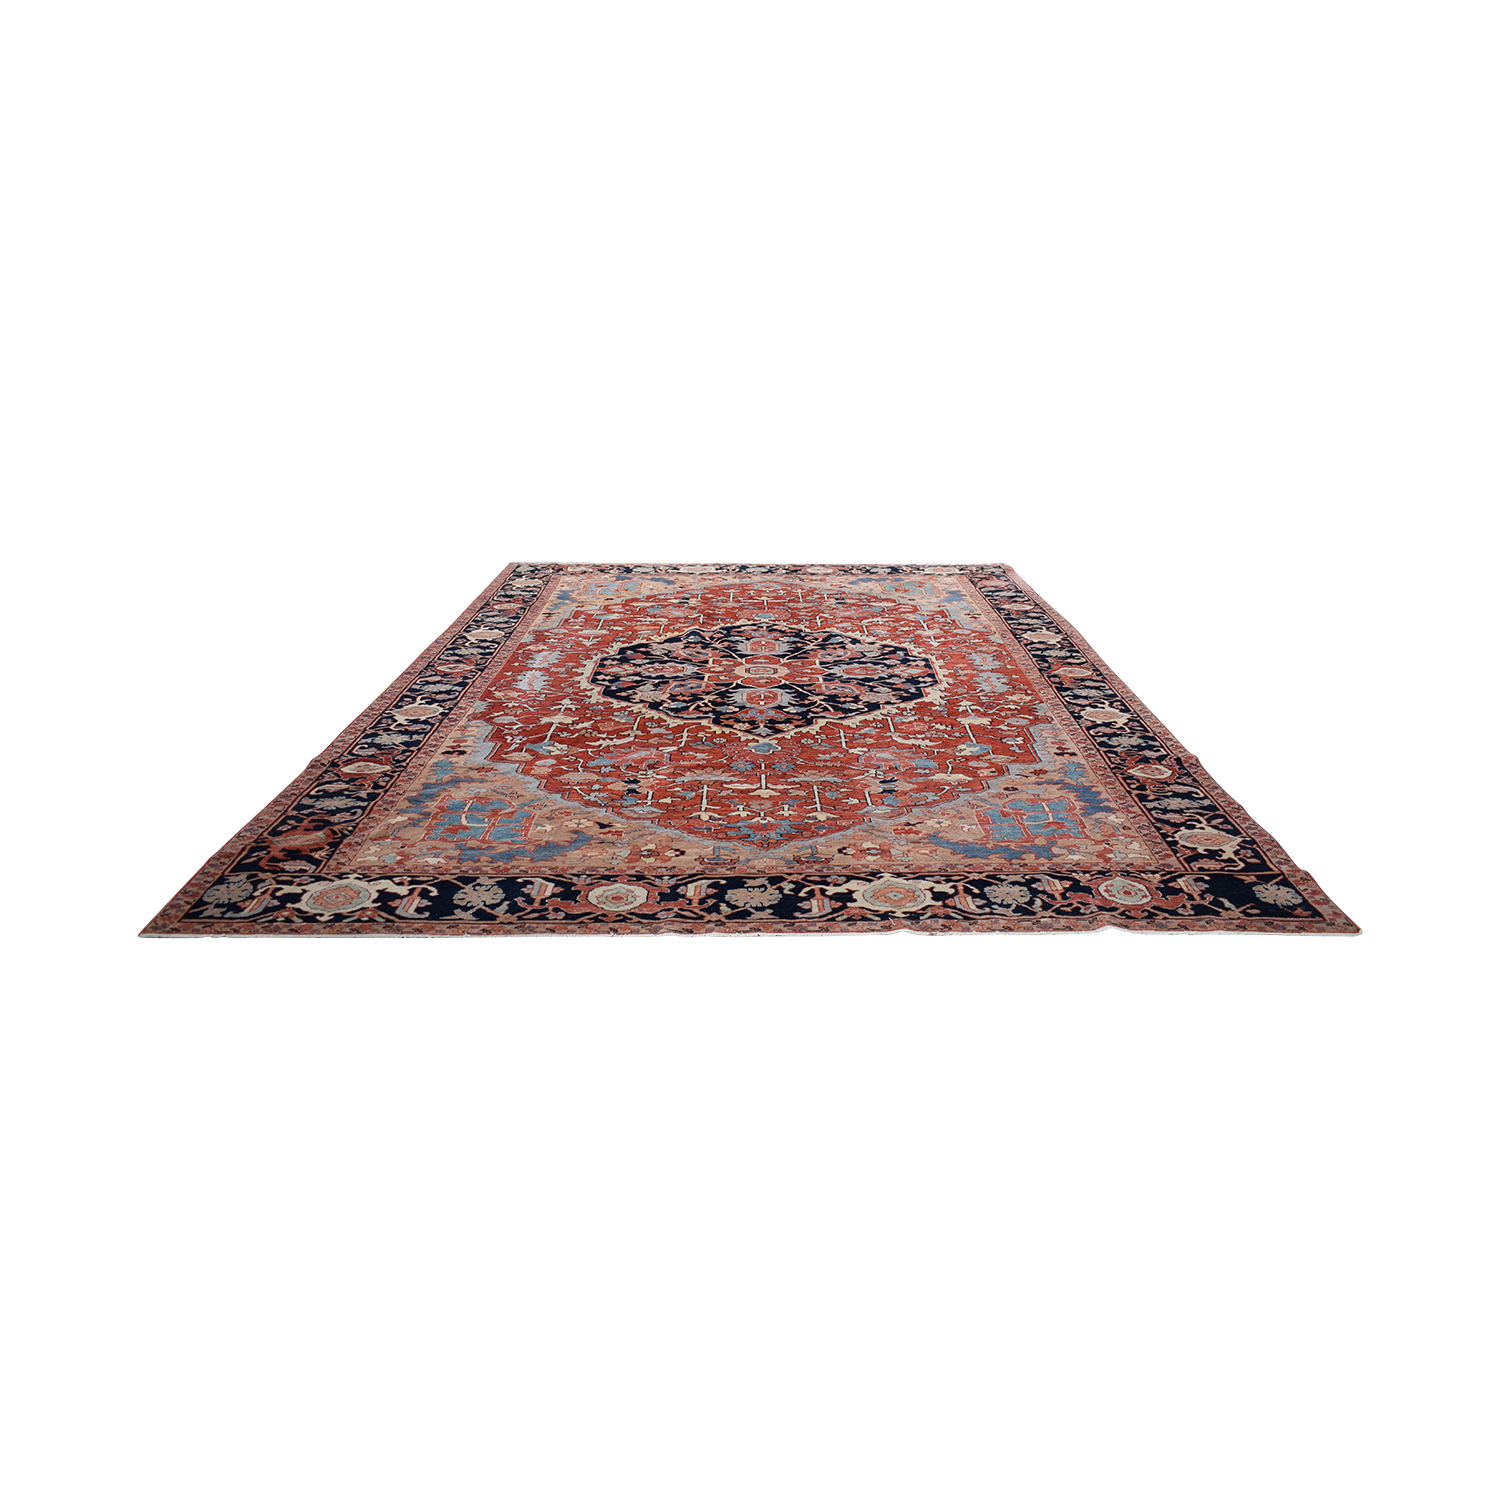 Woven Legends Woven Legends Large Area Rug Rugs